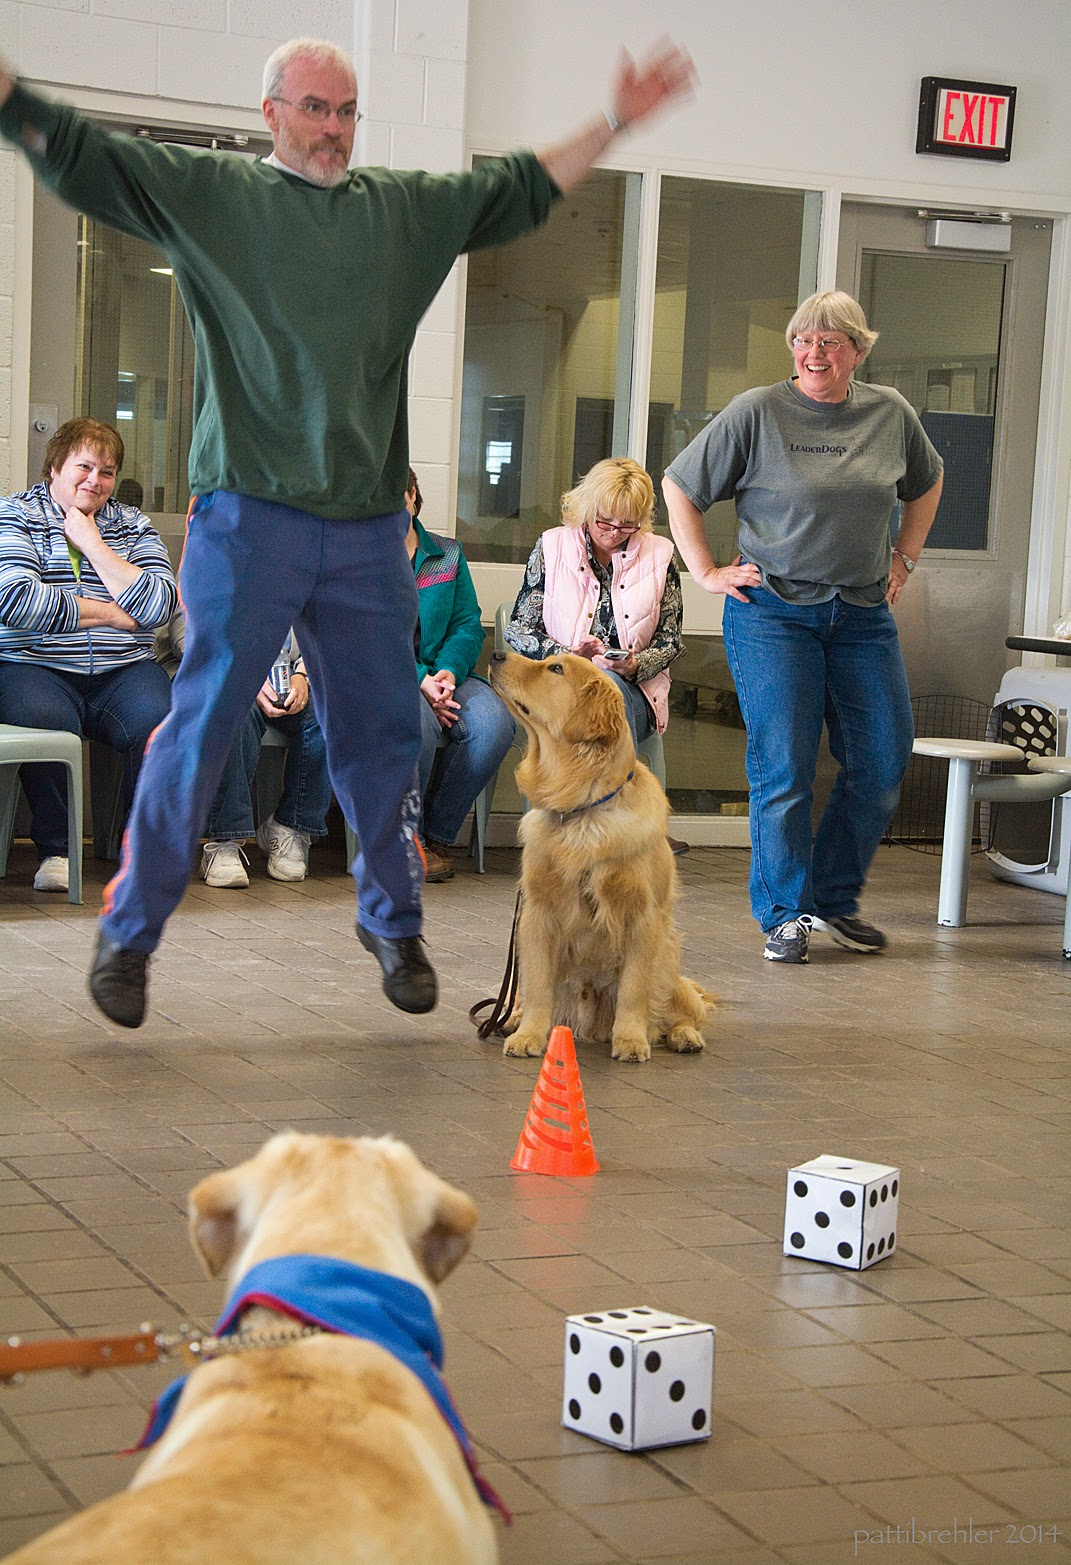 A different man is in mid jumping-jack with his feet off the floor and his arms spread wide. He is the one wearing blue pants and a green sweatshirt. A golden retriever is sitting at his left side looking up at him. Another  yellow lab is standing in the foreground, looking toward the man and golden retriever. The lab is being held by a leash and is wearing a blue bandana. There is an orange cone in front of the golden retriever and a pair of large six inch dice on the floor too. Three women are sitting behind the man and one woman, dressed in blue jeans and a grey t-shirt with her hands on her hips, is standing behing and to the right.